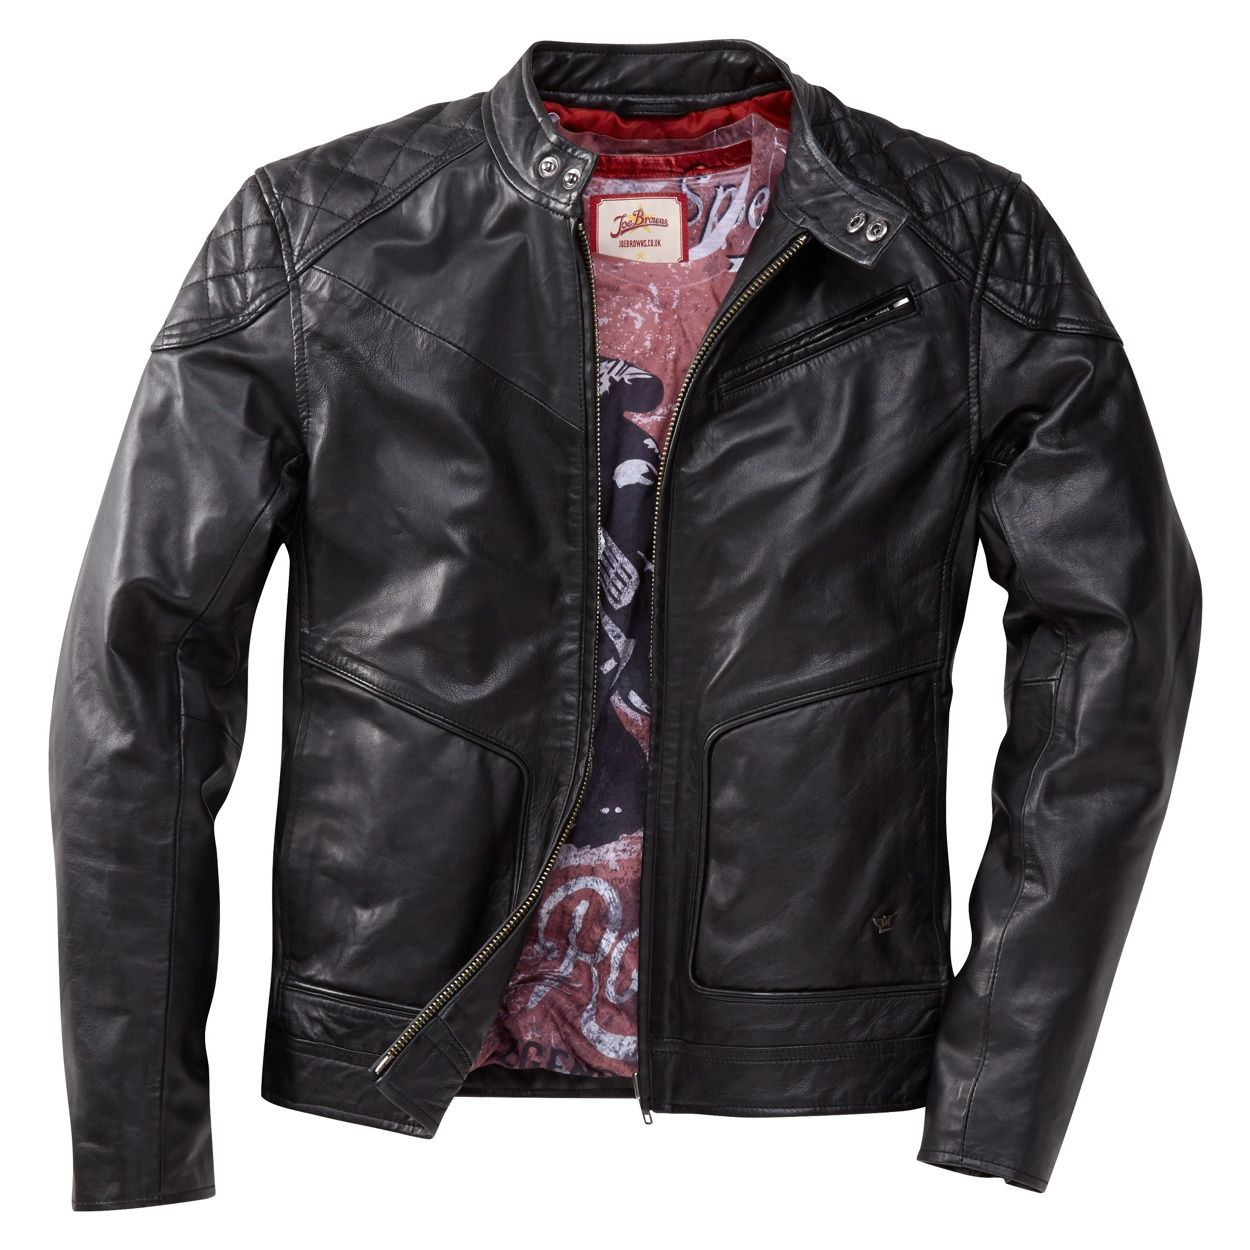 Driving gloves debenhams - Joe Browns Black Leather Biker Jacket At Debenhams Com